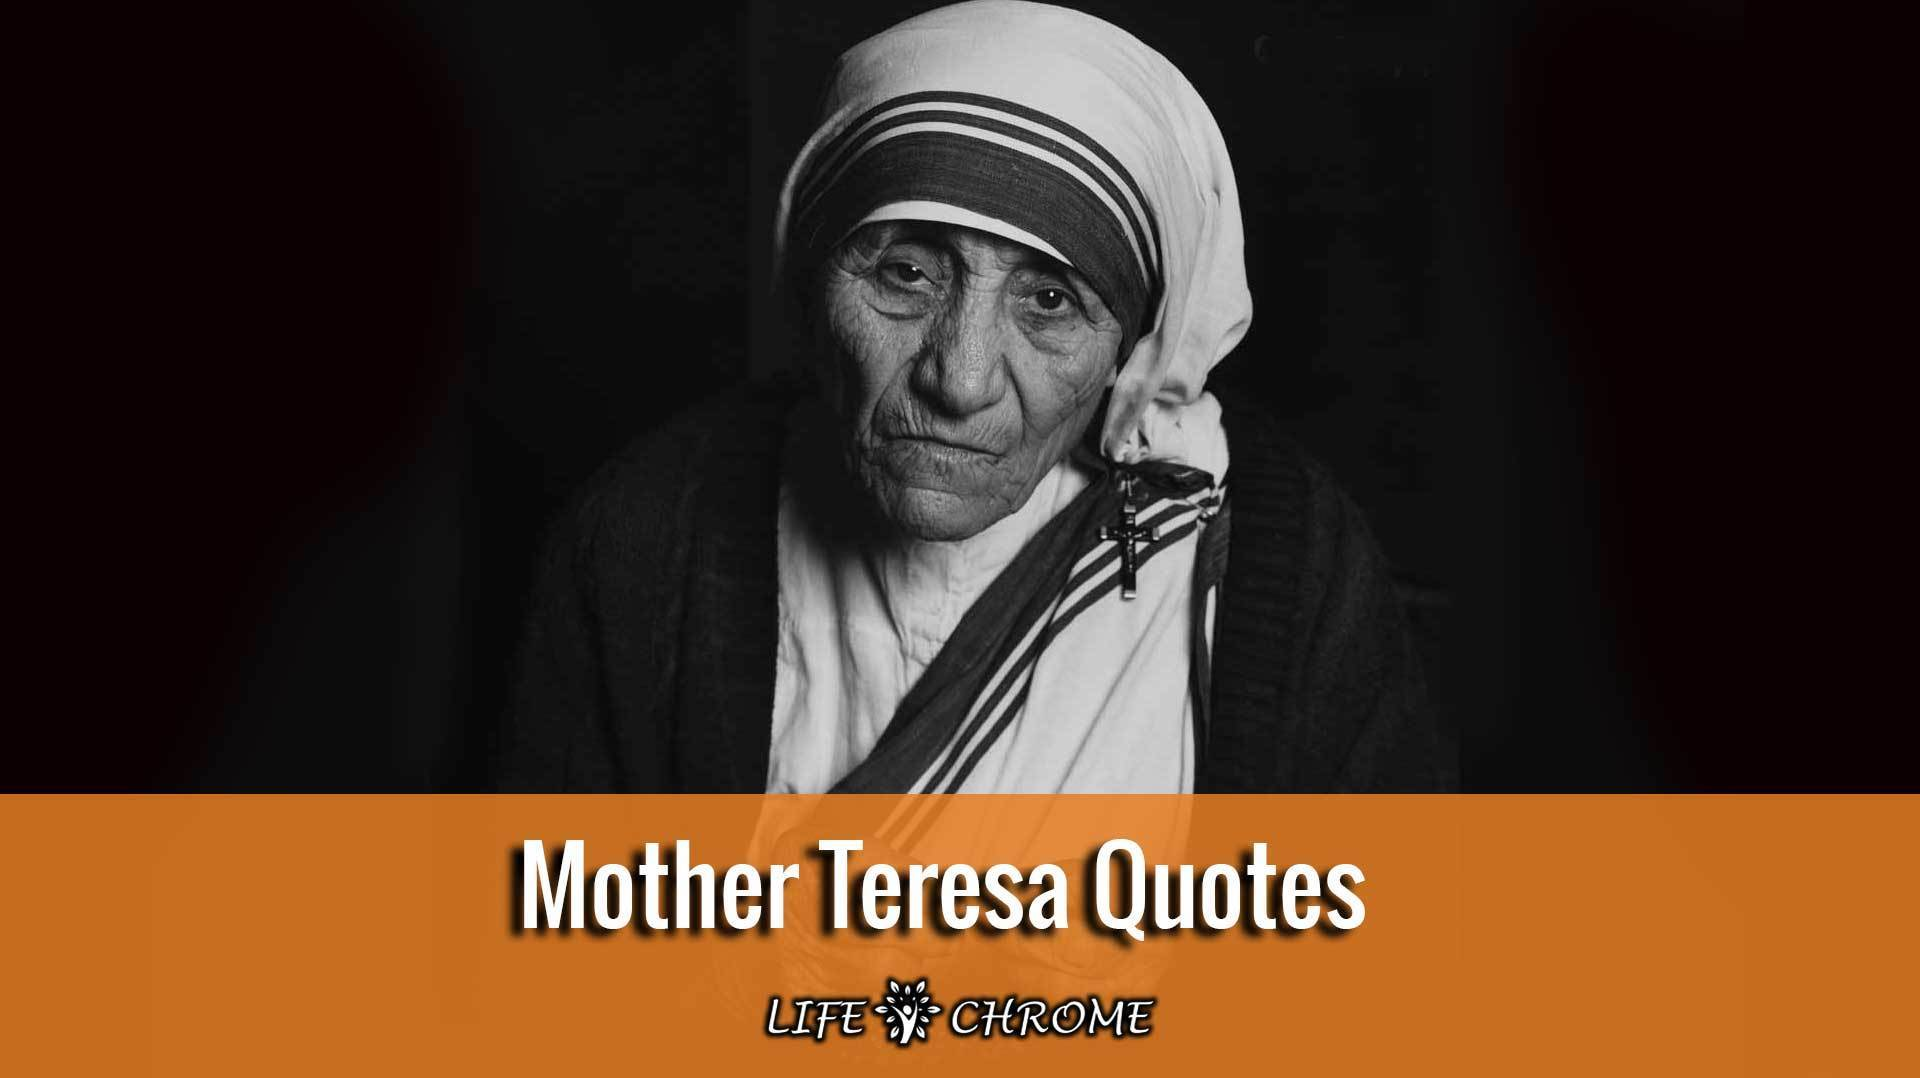 Mother Teresa Quotes